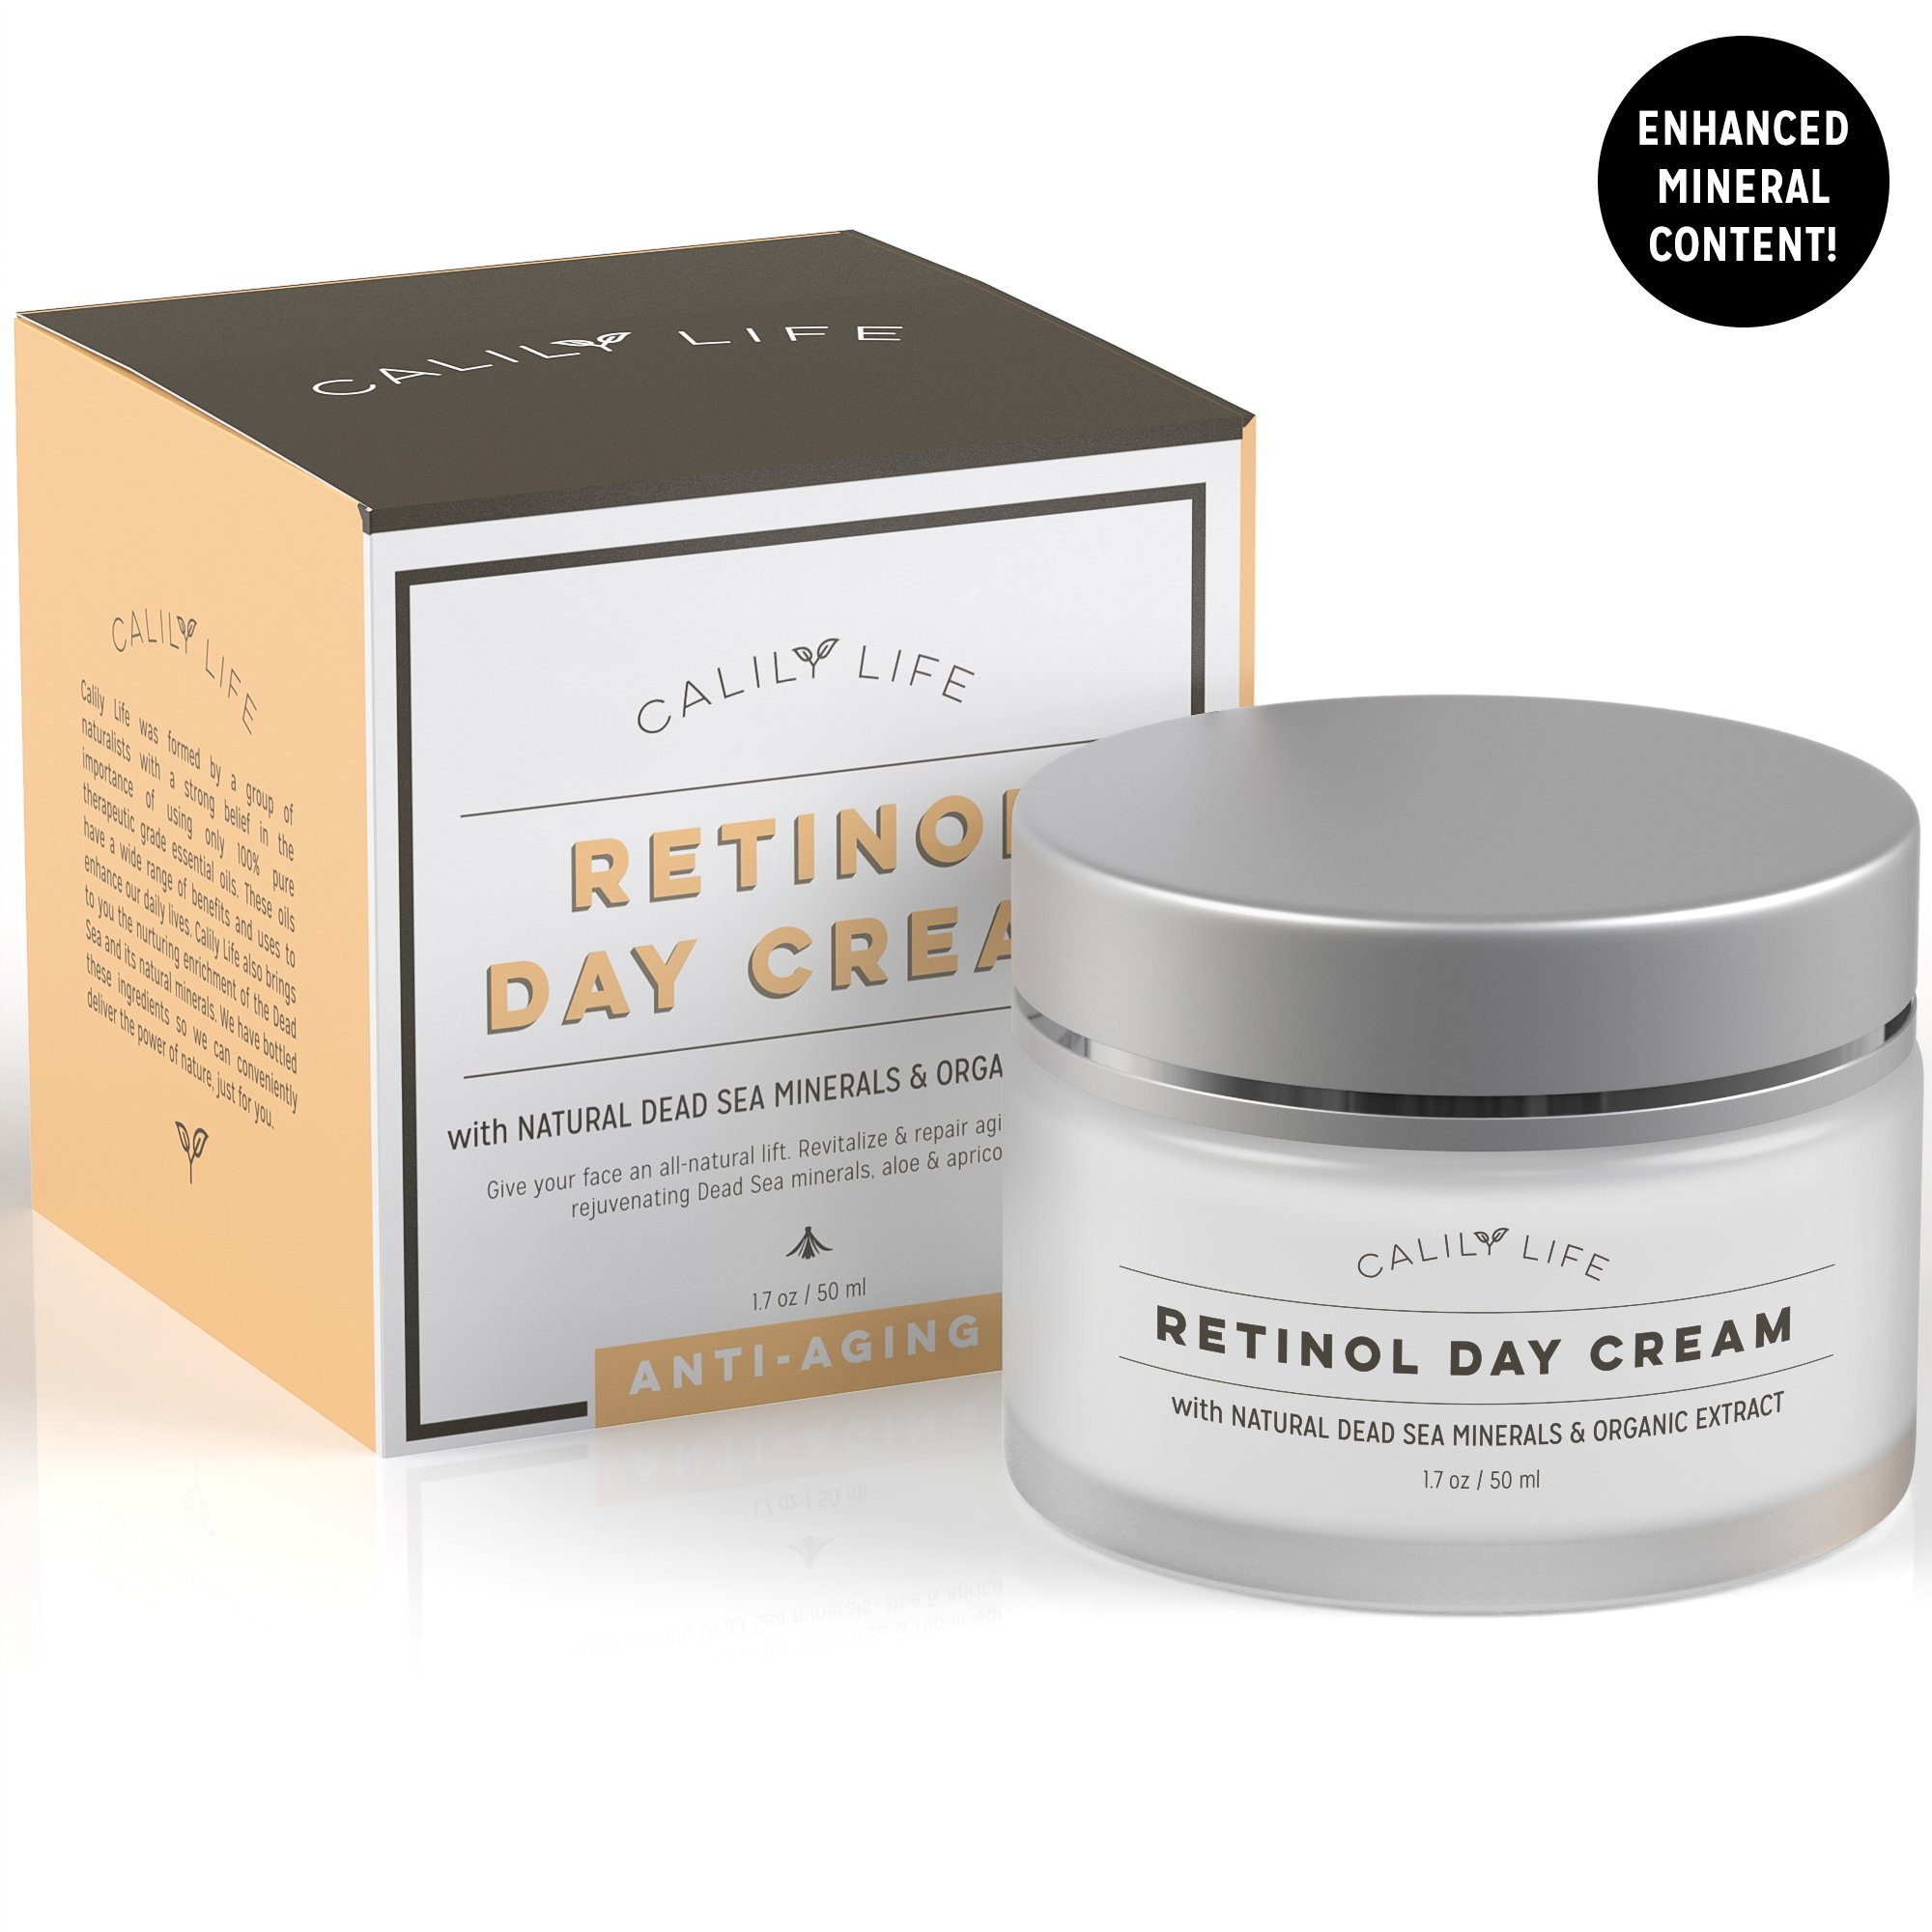 CalilyLife Organic Anti-Aging Retinol Day Cream with Dead Sea Minerals, 1.7 Oz. – Non-Greasy, Fast Absorbing – Anti-Wrinkle, Hydrates, Smooths, Regenerates and Strengthens